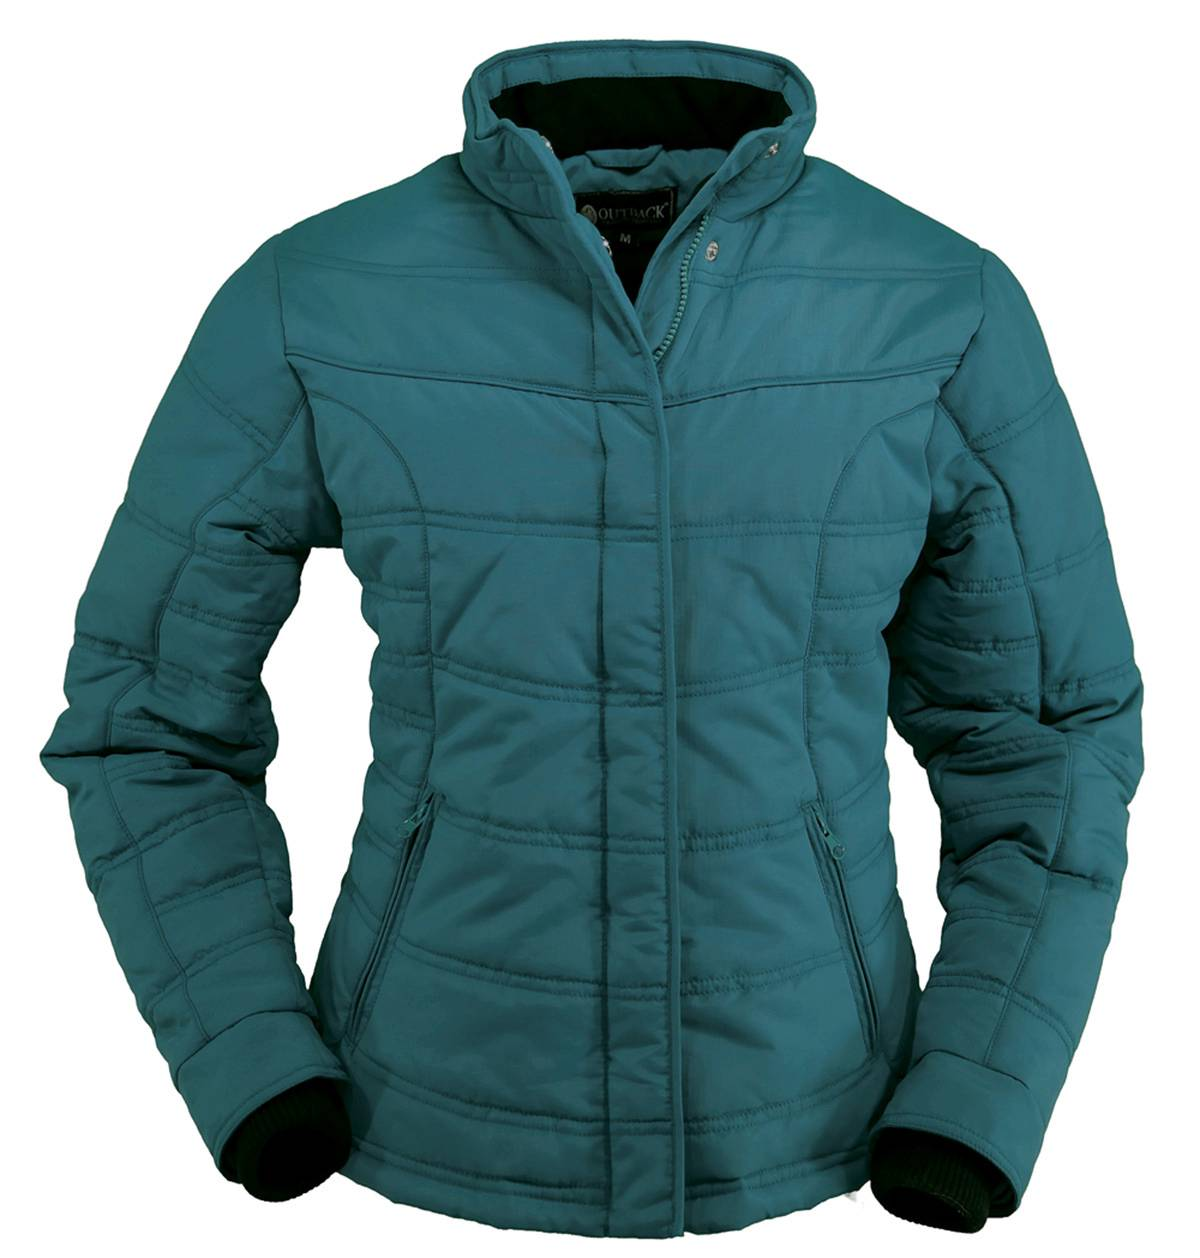 Outback Trading Ladies' Mineral Jacket